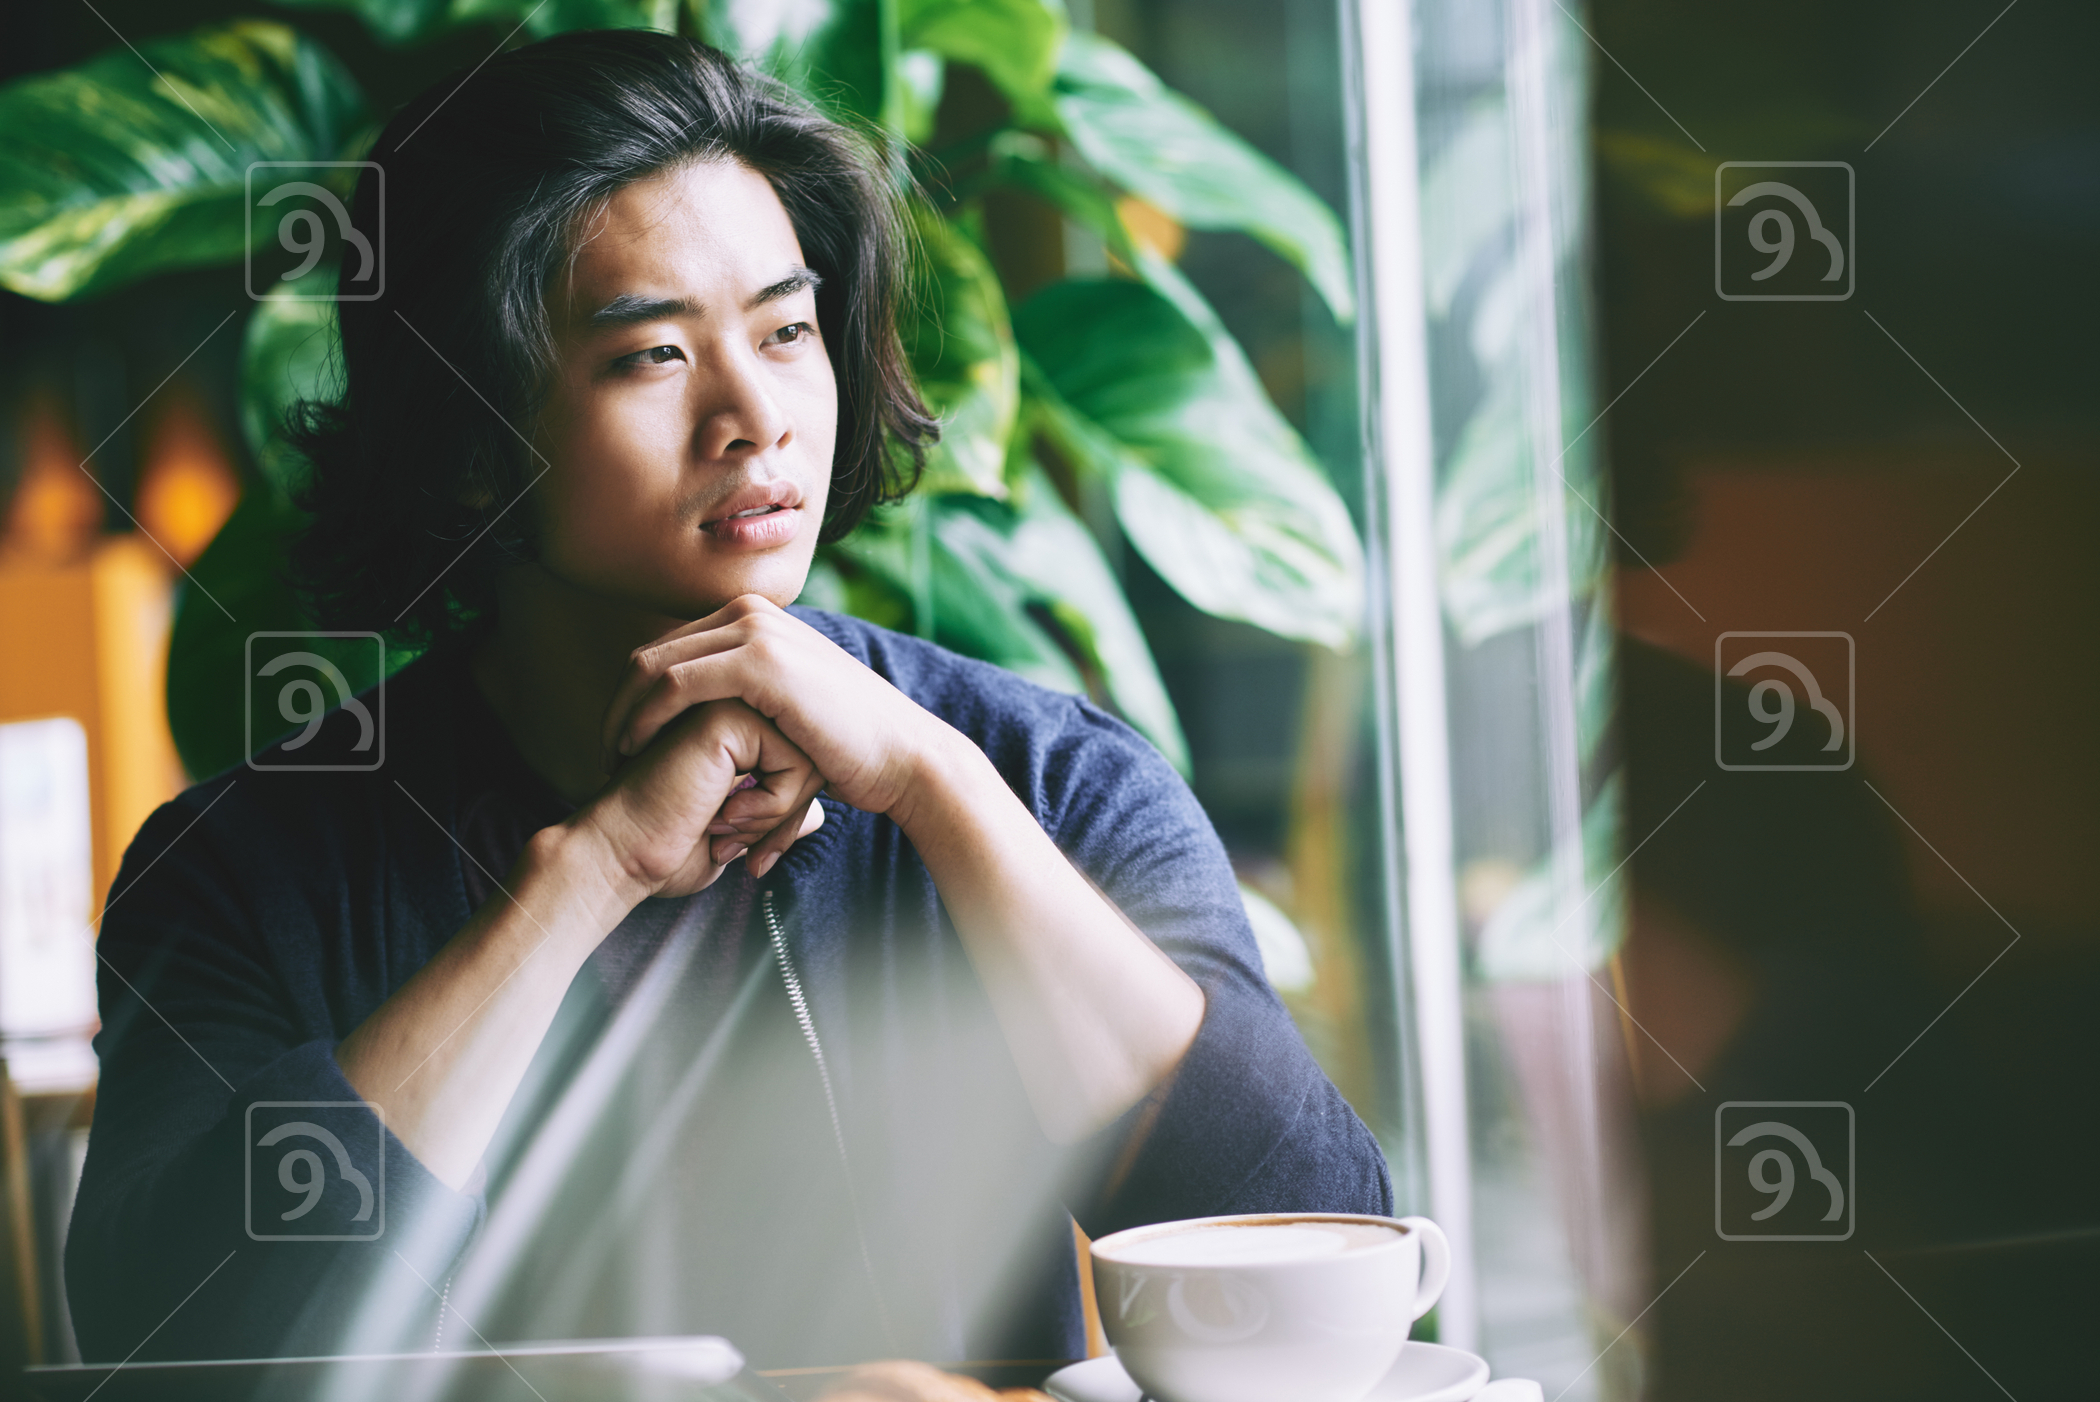 Portrait of pensive handsome man sitting in cafe